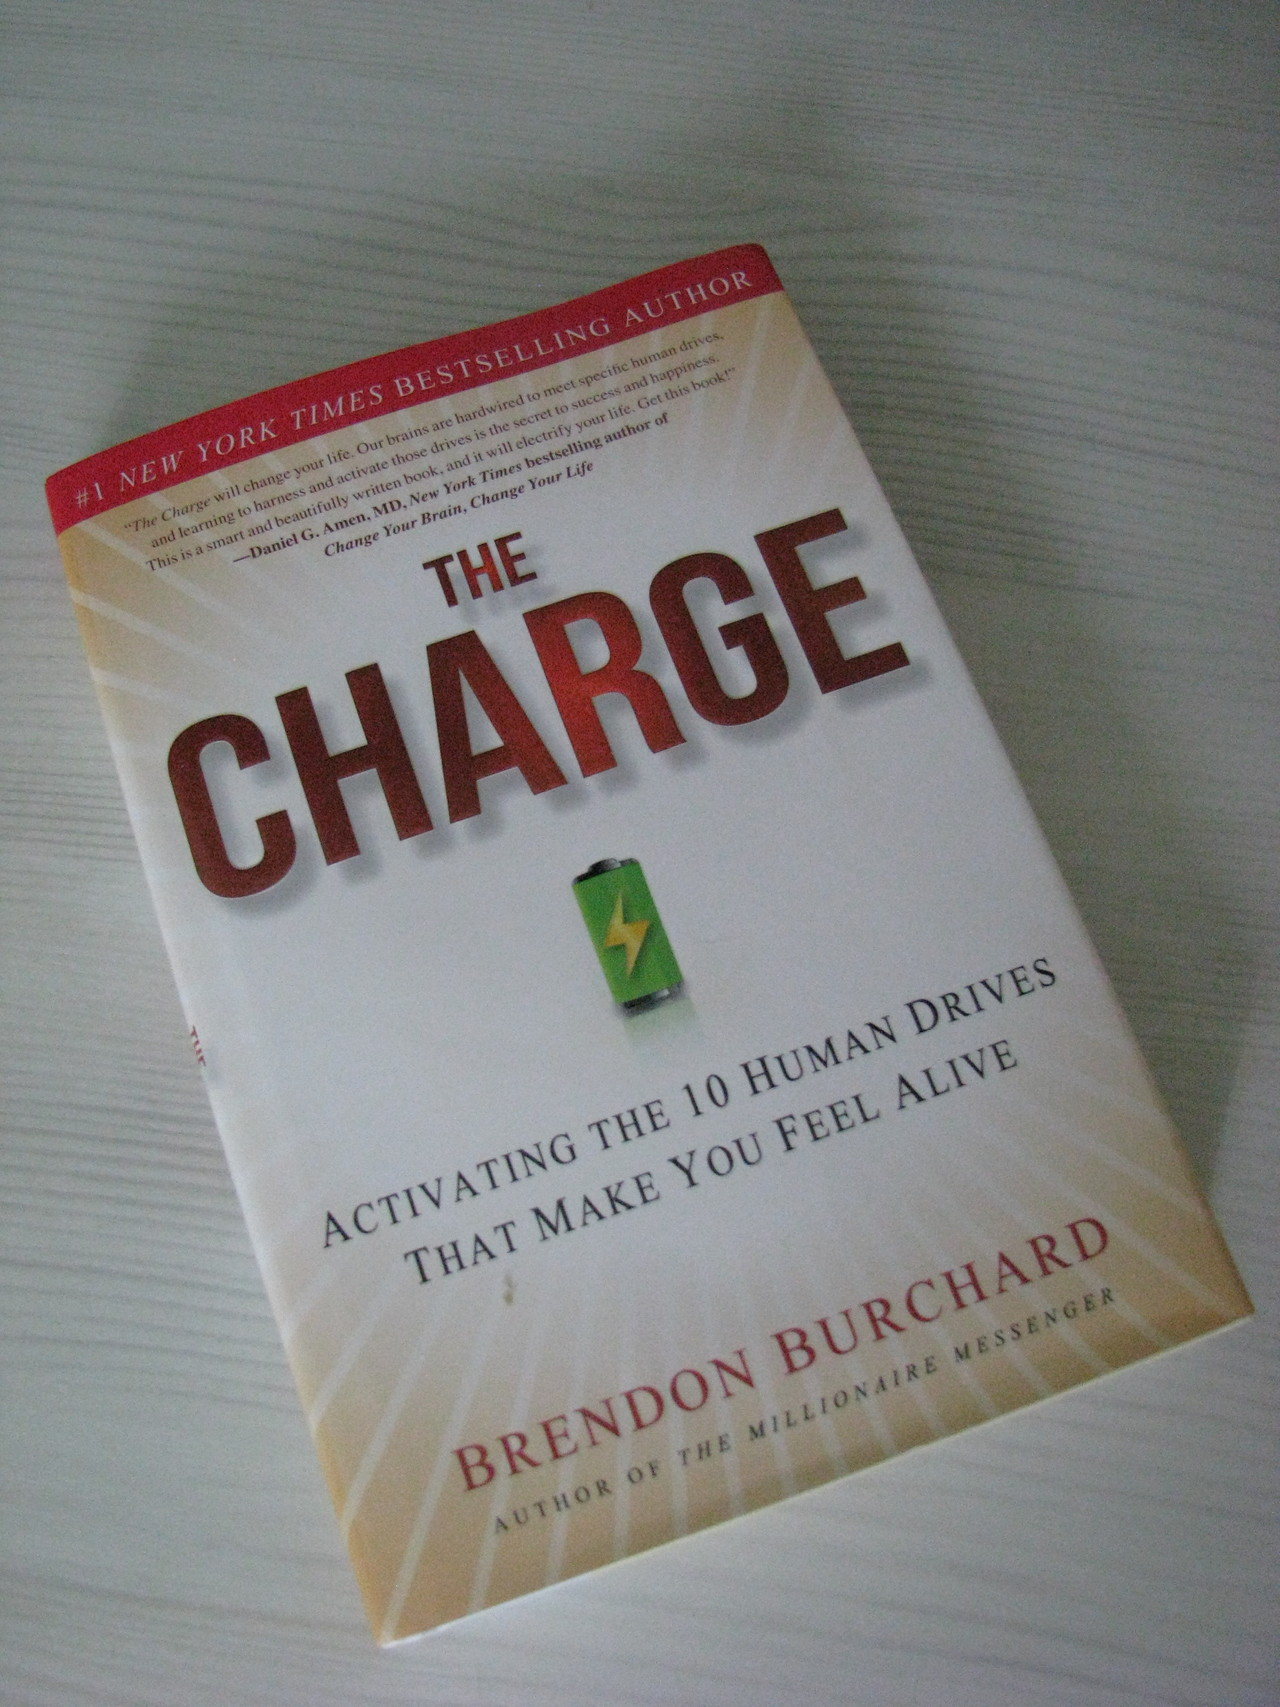 Обзор книги «The Charge. Activating the 10 Human Drives That Make You Feel Alive»